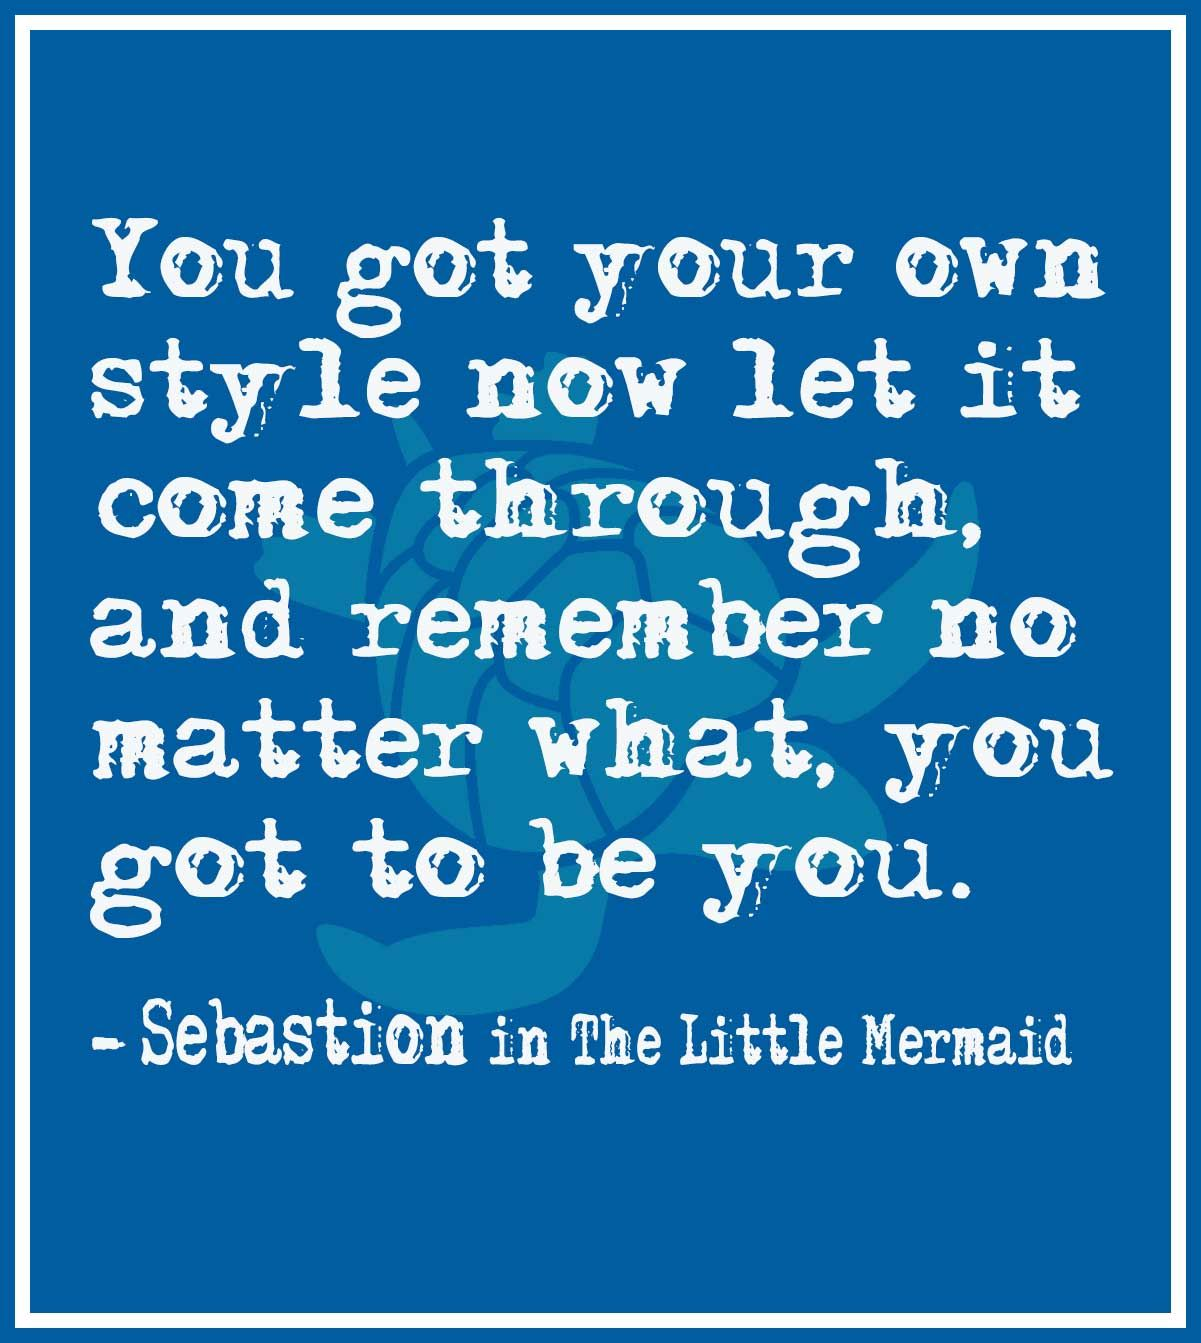 Motivational Quotes About Success: The Little Mermaid Quote